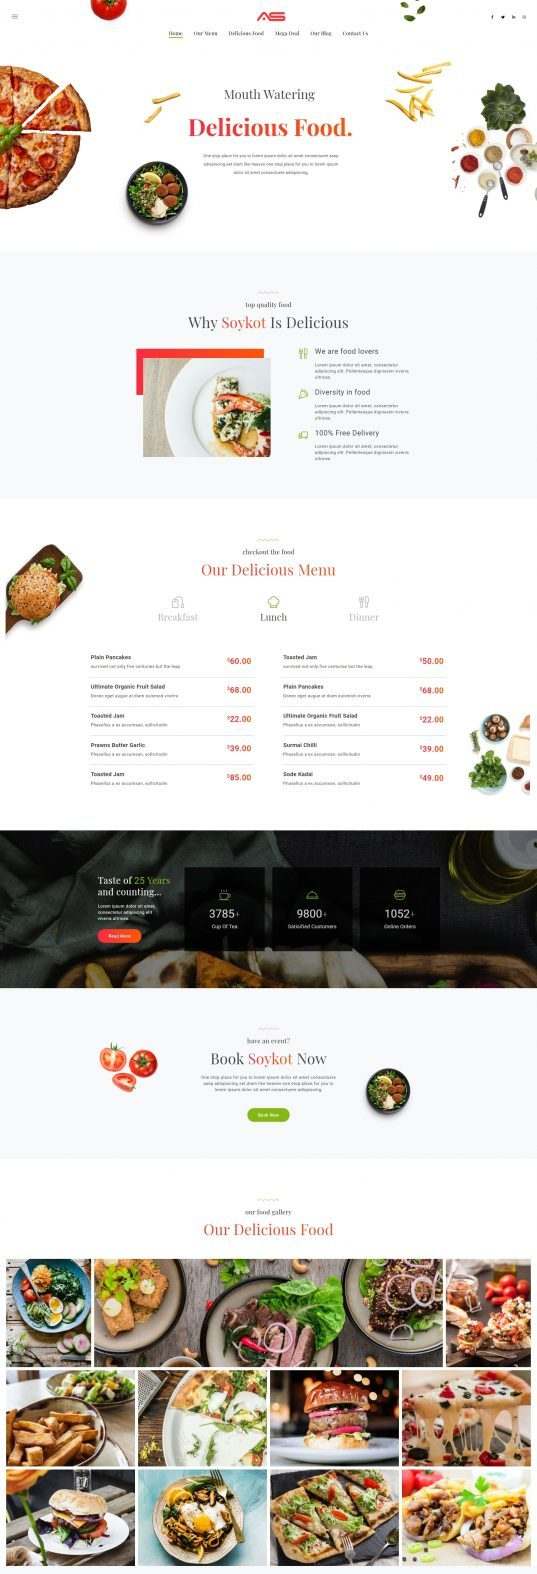 Soykot | Fast Food & Pizza Restaurants HTML5 Landing Page Template - Single Page Website With Animated Effects